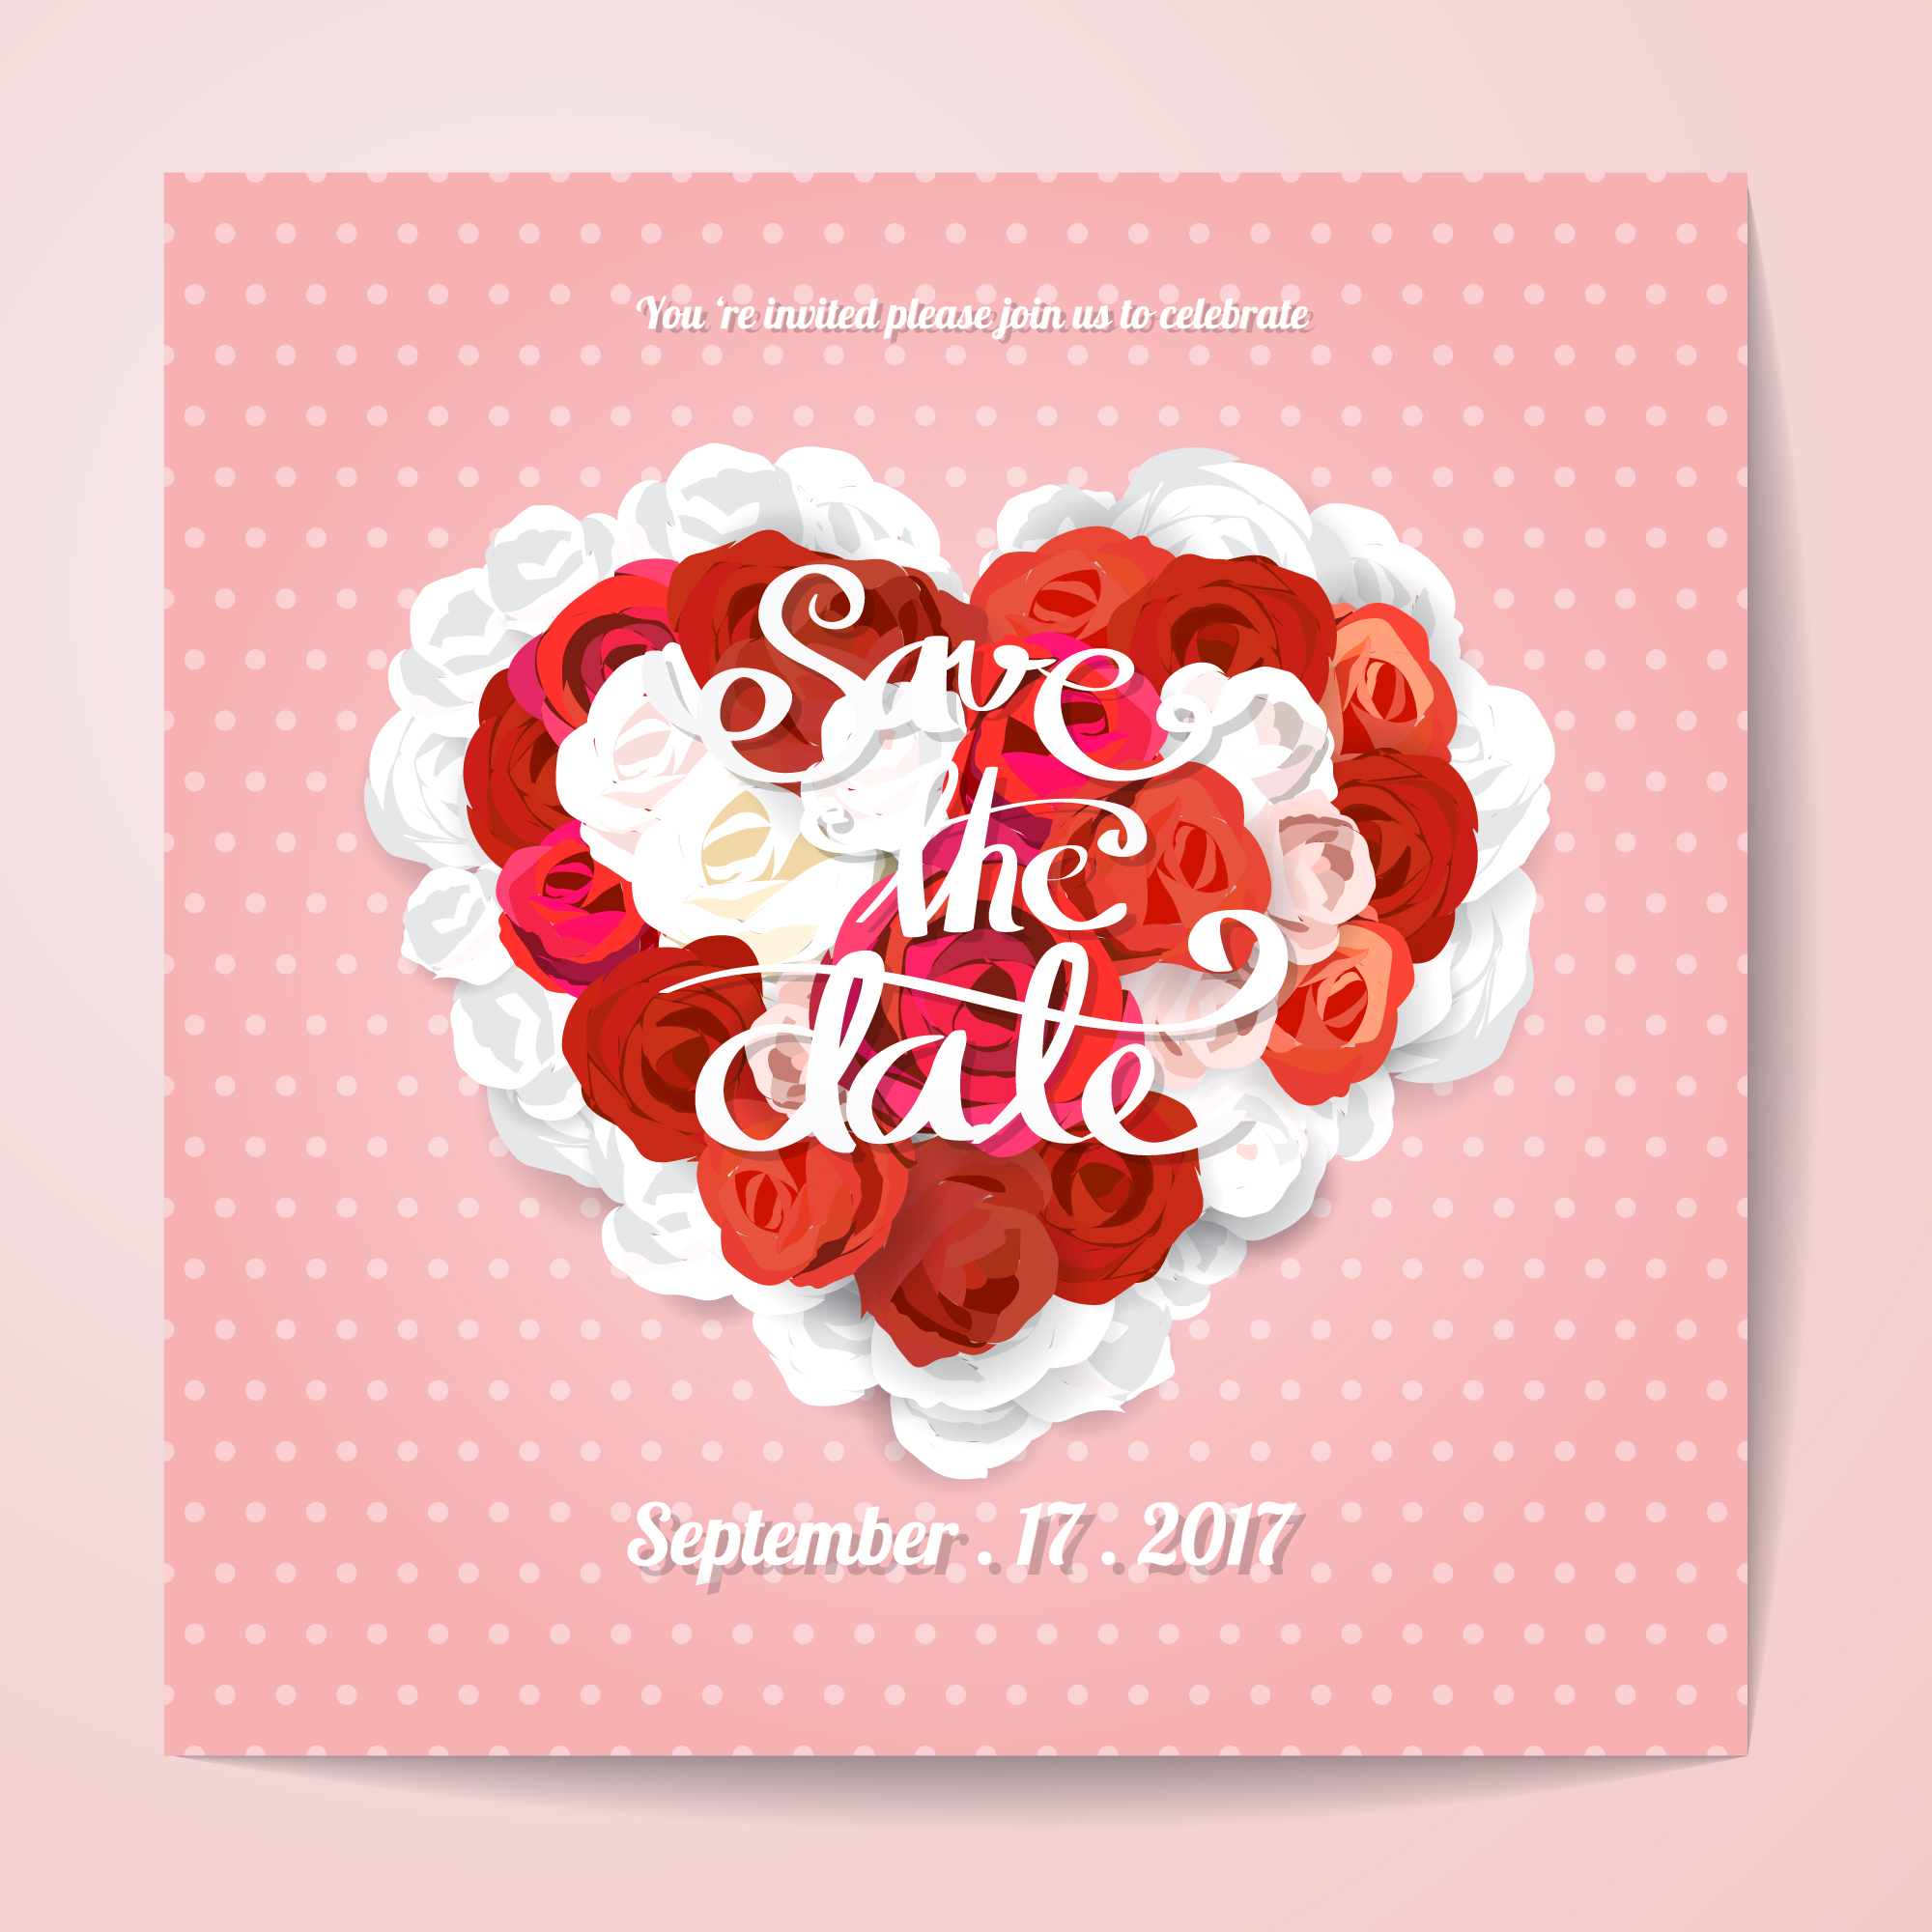 Wedding invitation with red roses heart